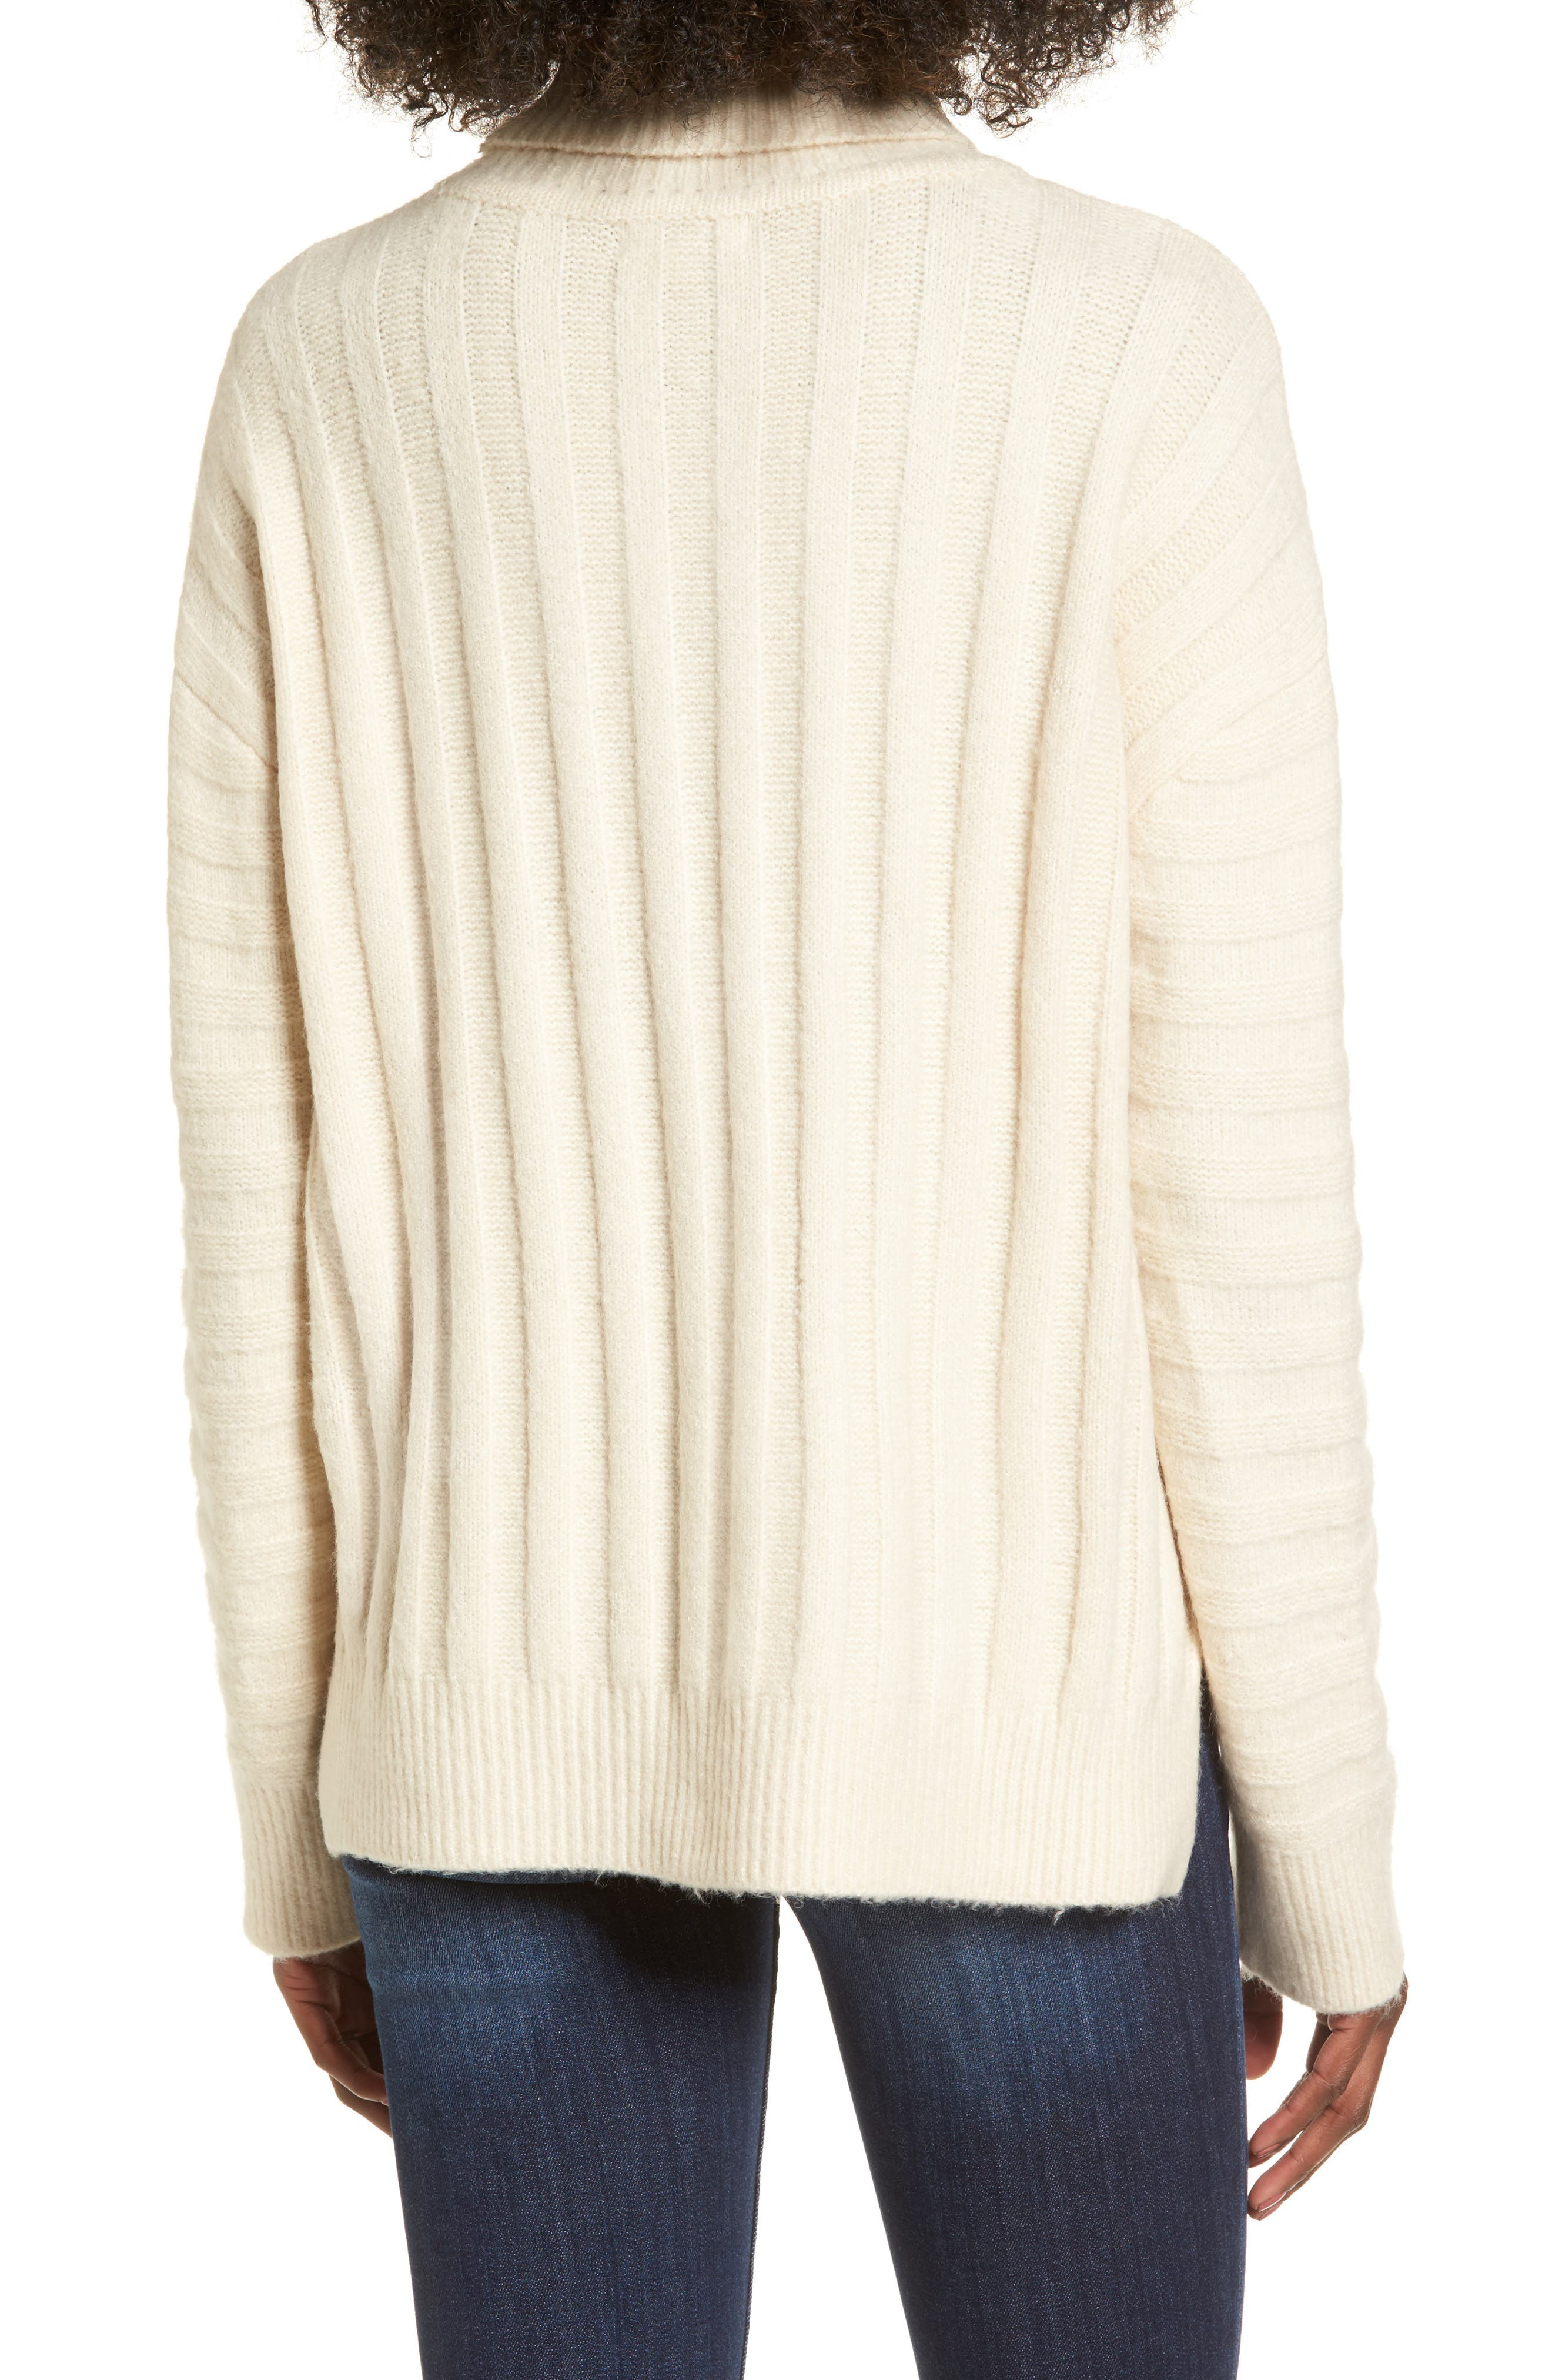 Turtleneck Sweater,                             Alternate thumbnail 2, color,                             Ivory